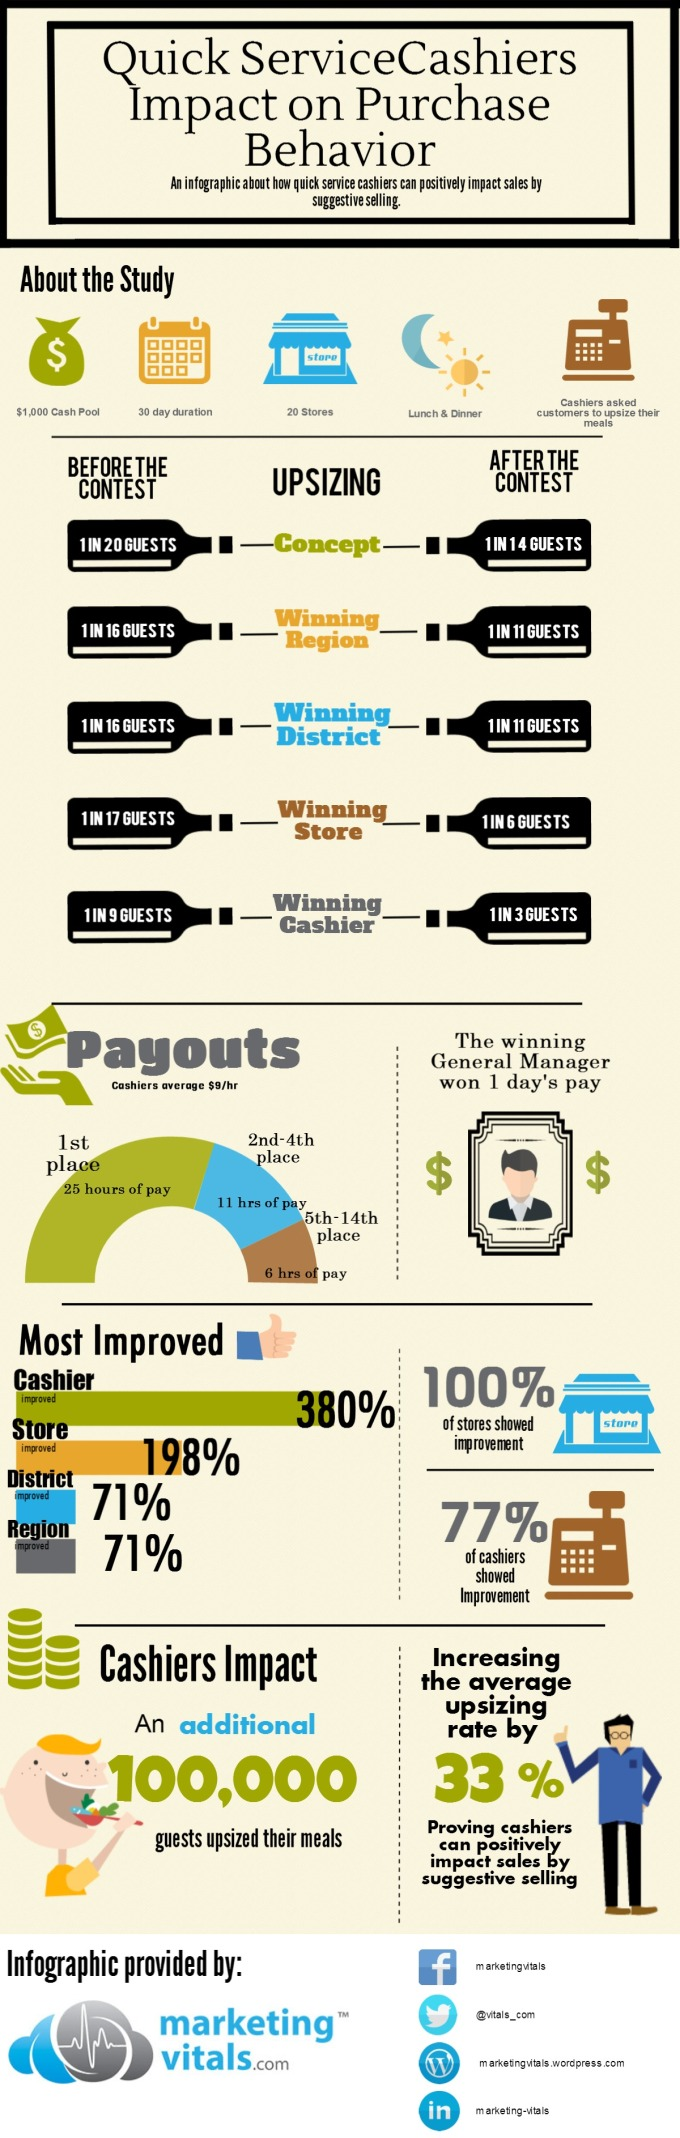 Infographic: QSR Cashiers Can Increase Sales